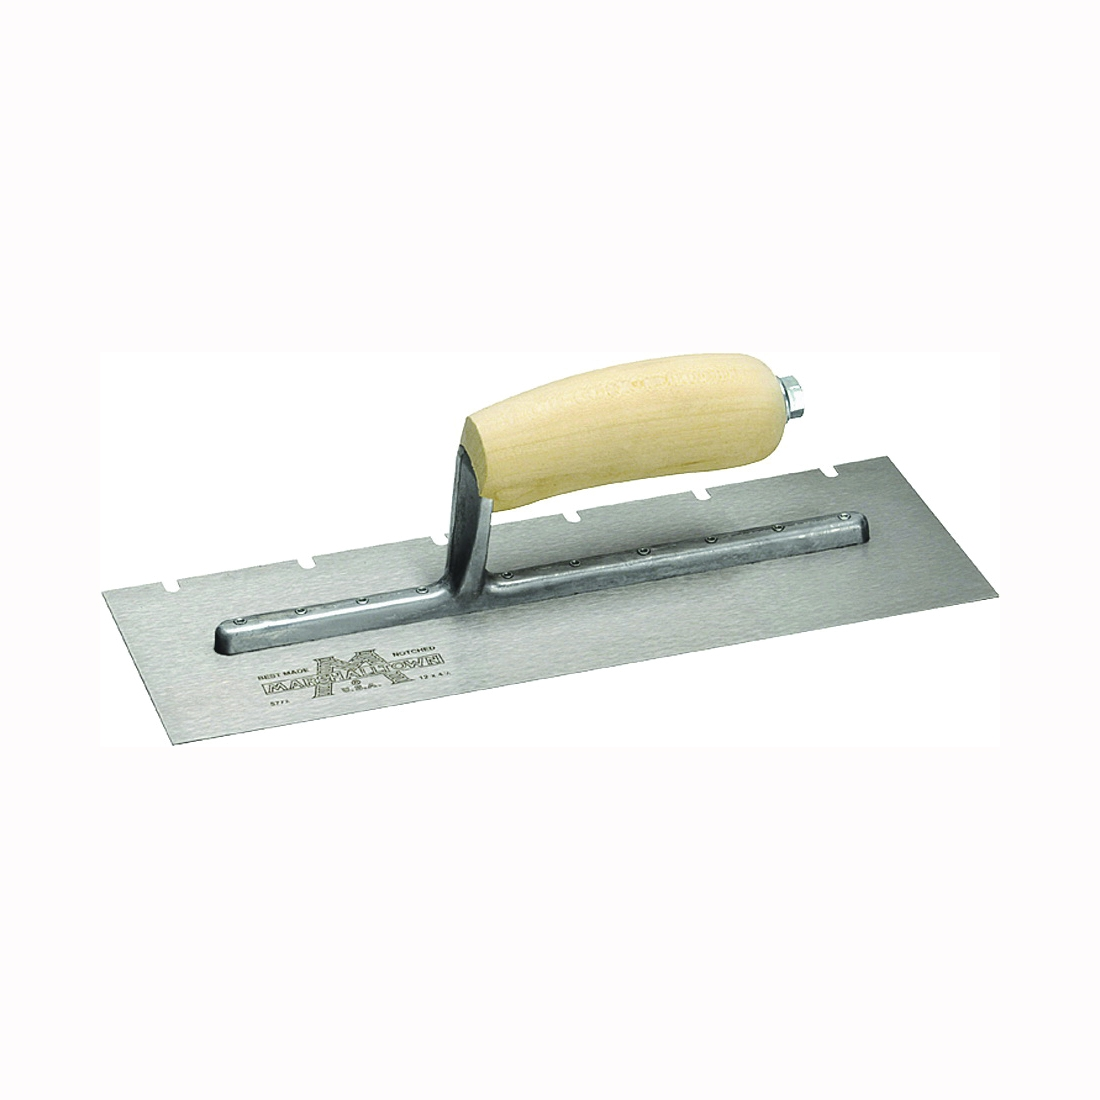 Picture of Marshalltown 701S Trowel, 11 in L, 4-1/2 in W, V Notch, Curved Handle